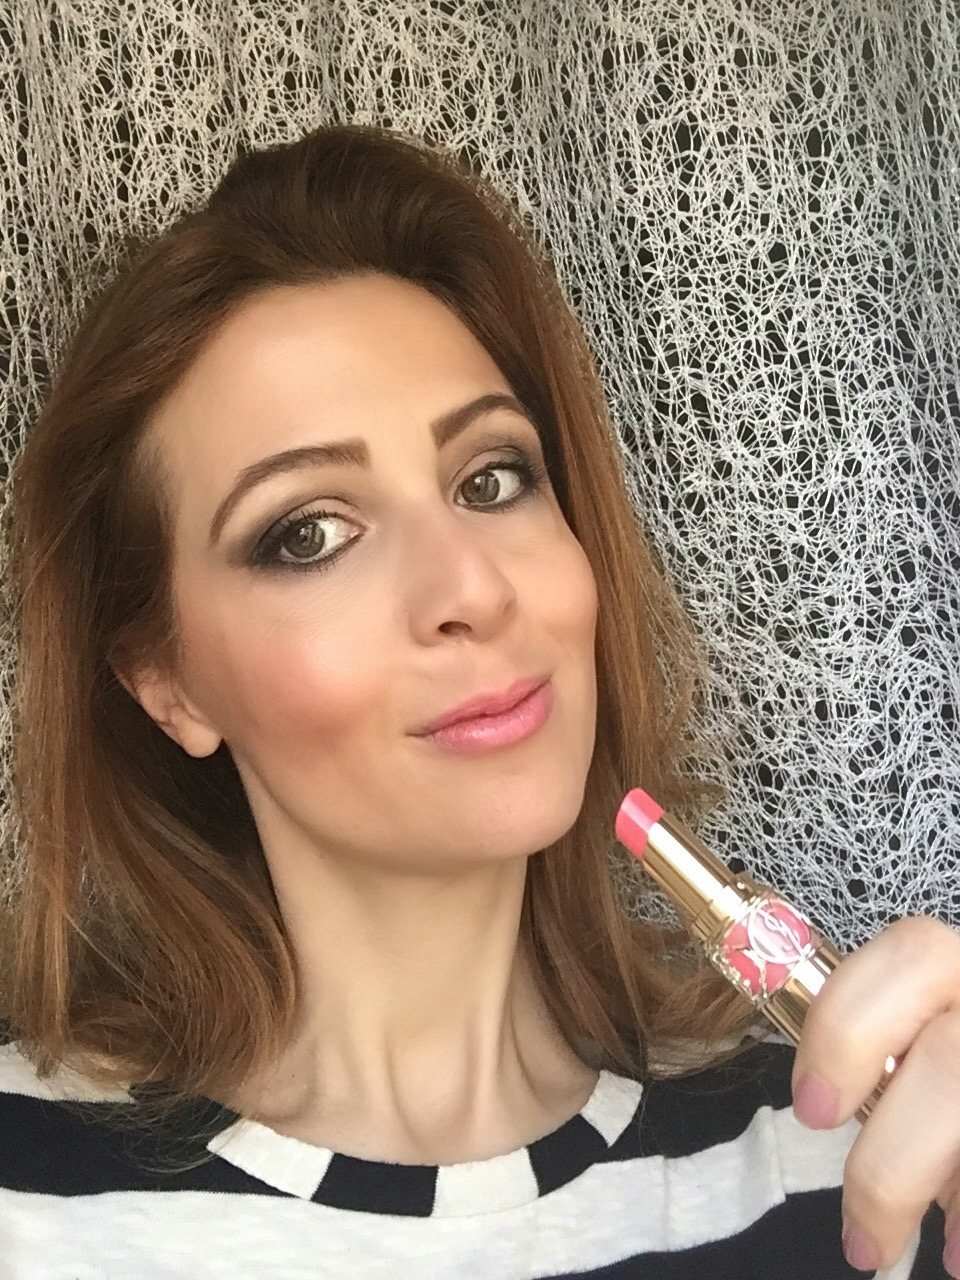 YSL Rouge Volupté Shine lipstick selfie corail a porter n Fashion and Cookies beauty blog, beauty blogger